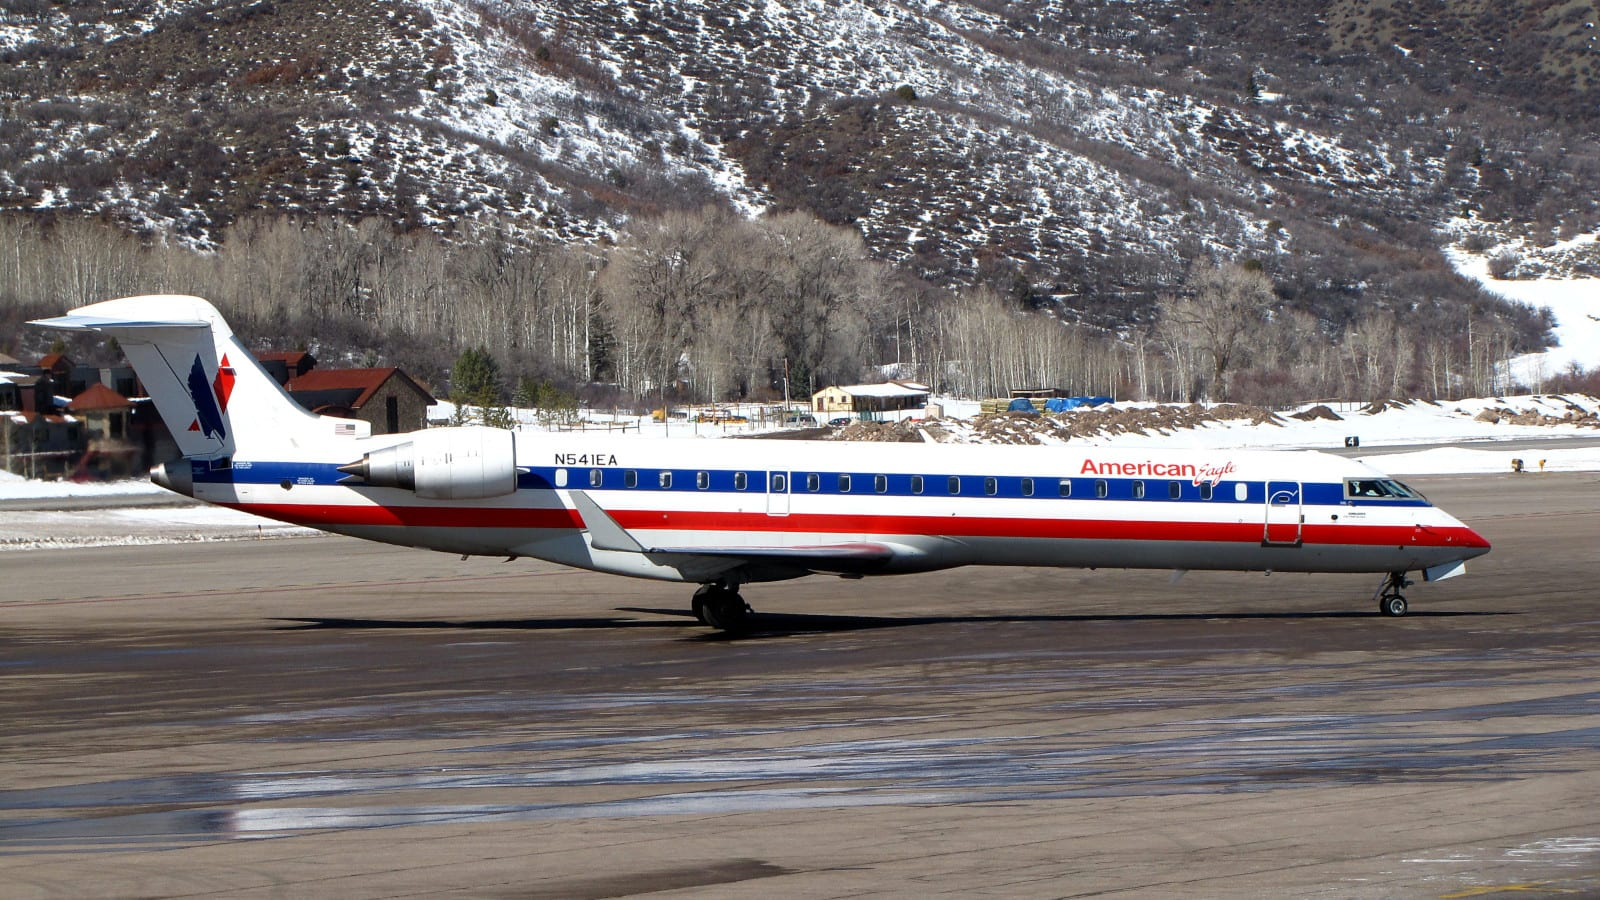 Aspen-Pitkin County Airport American Eagle Bombardier CRJ-700